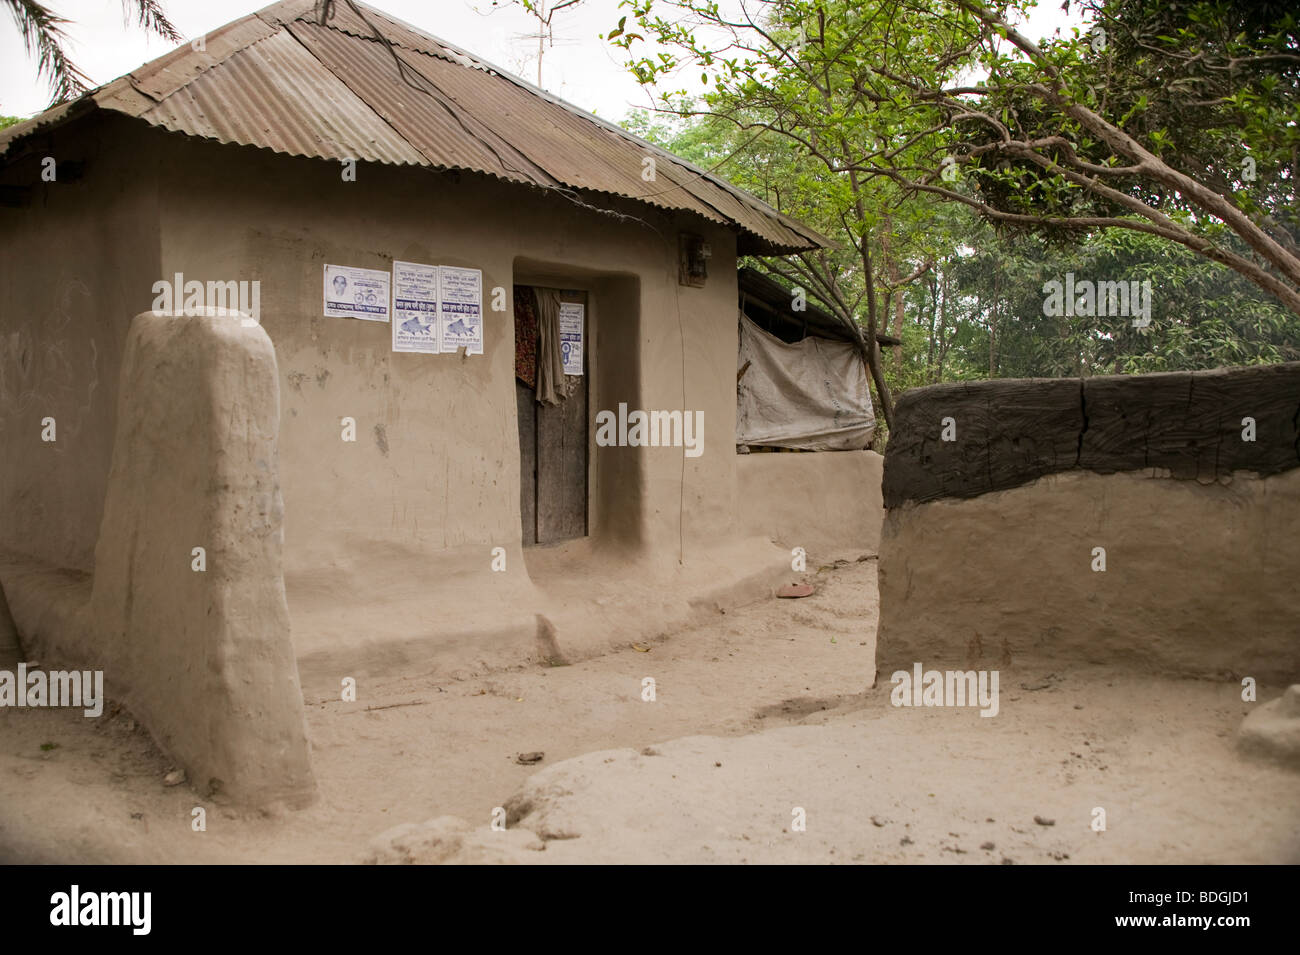 A Mud Building With Sheet Metal Roof In Bangladesh Stock